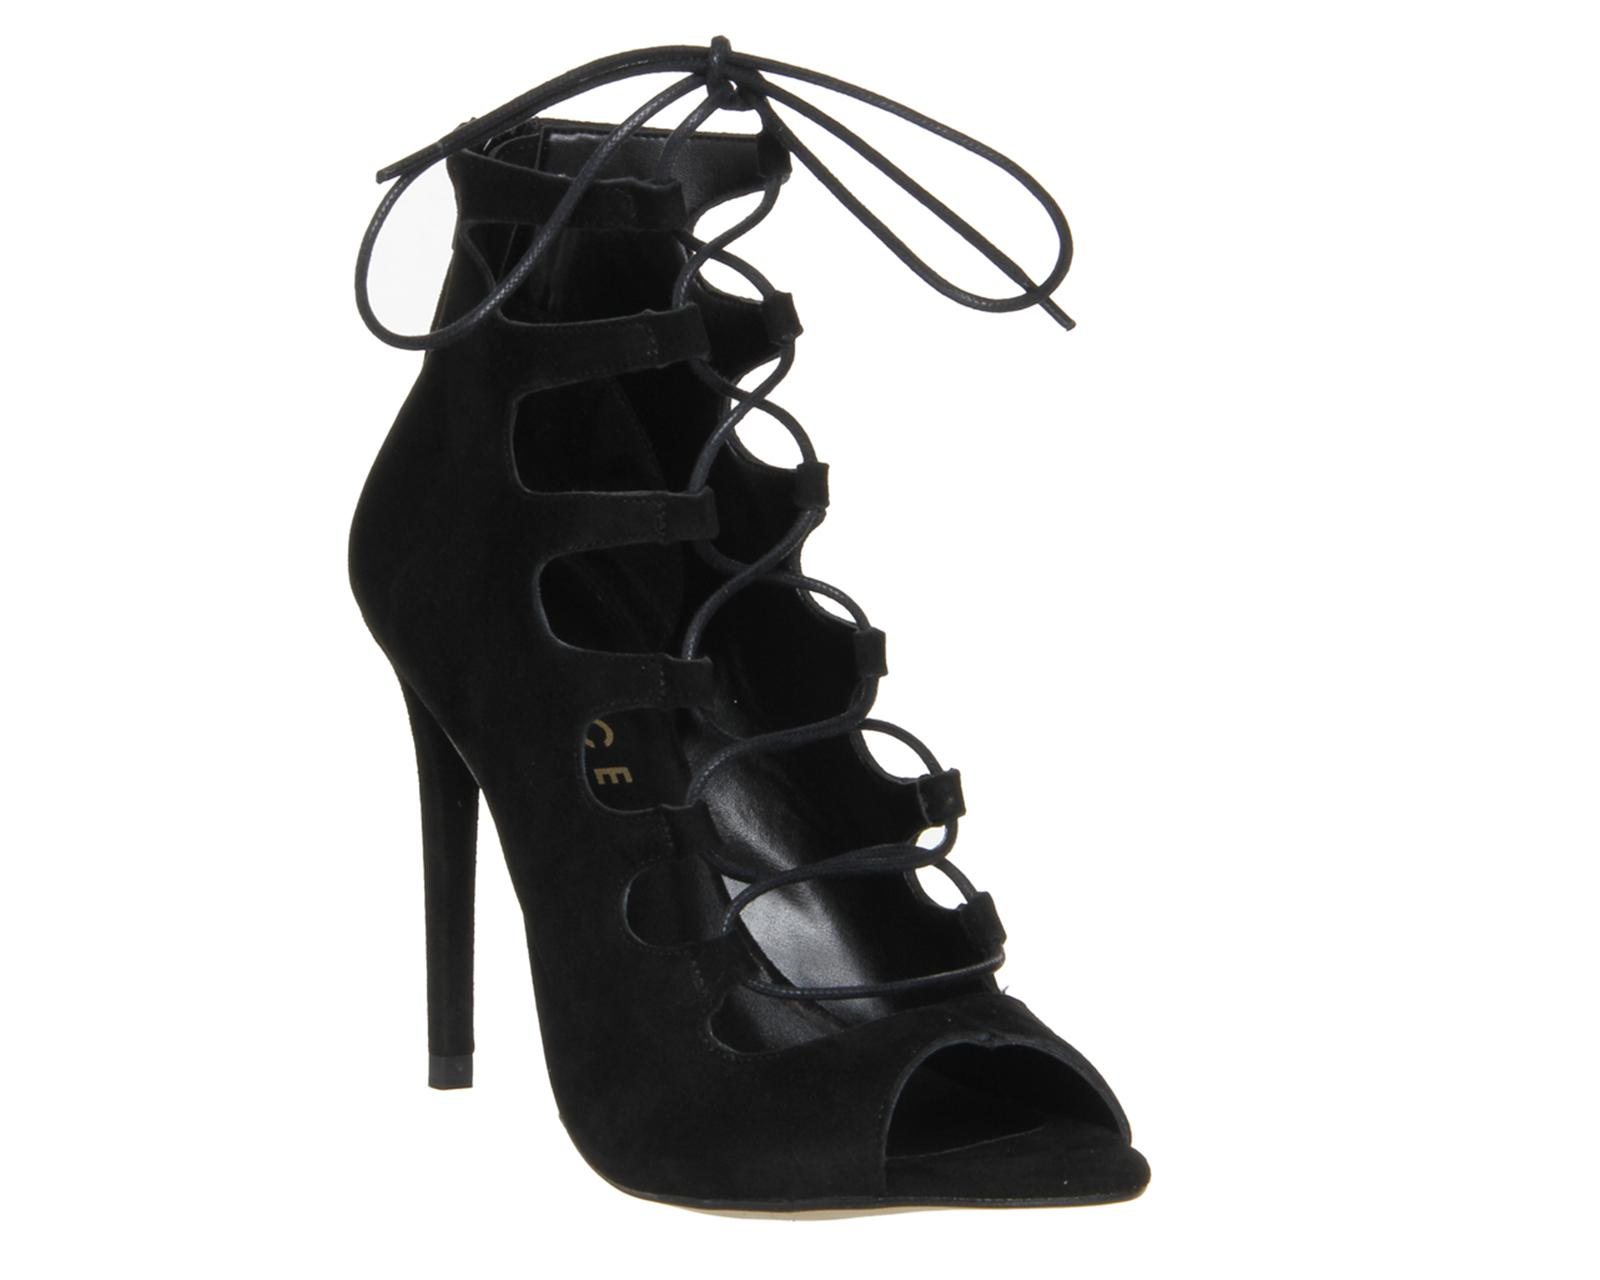 2696990d038a Lyst - Office Parisian Lace Up High Heel Sandals in Black